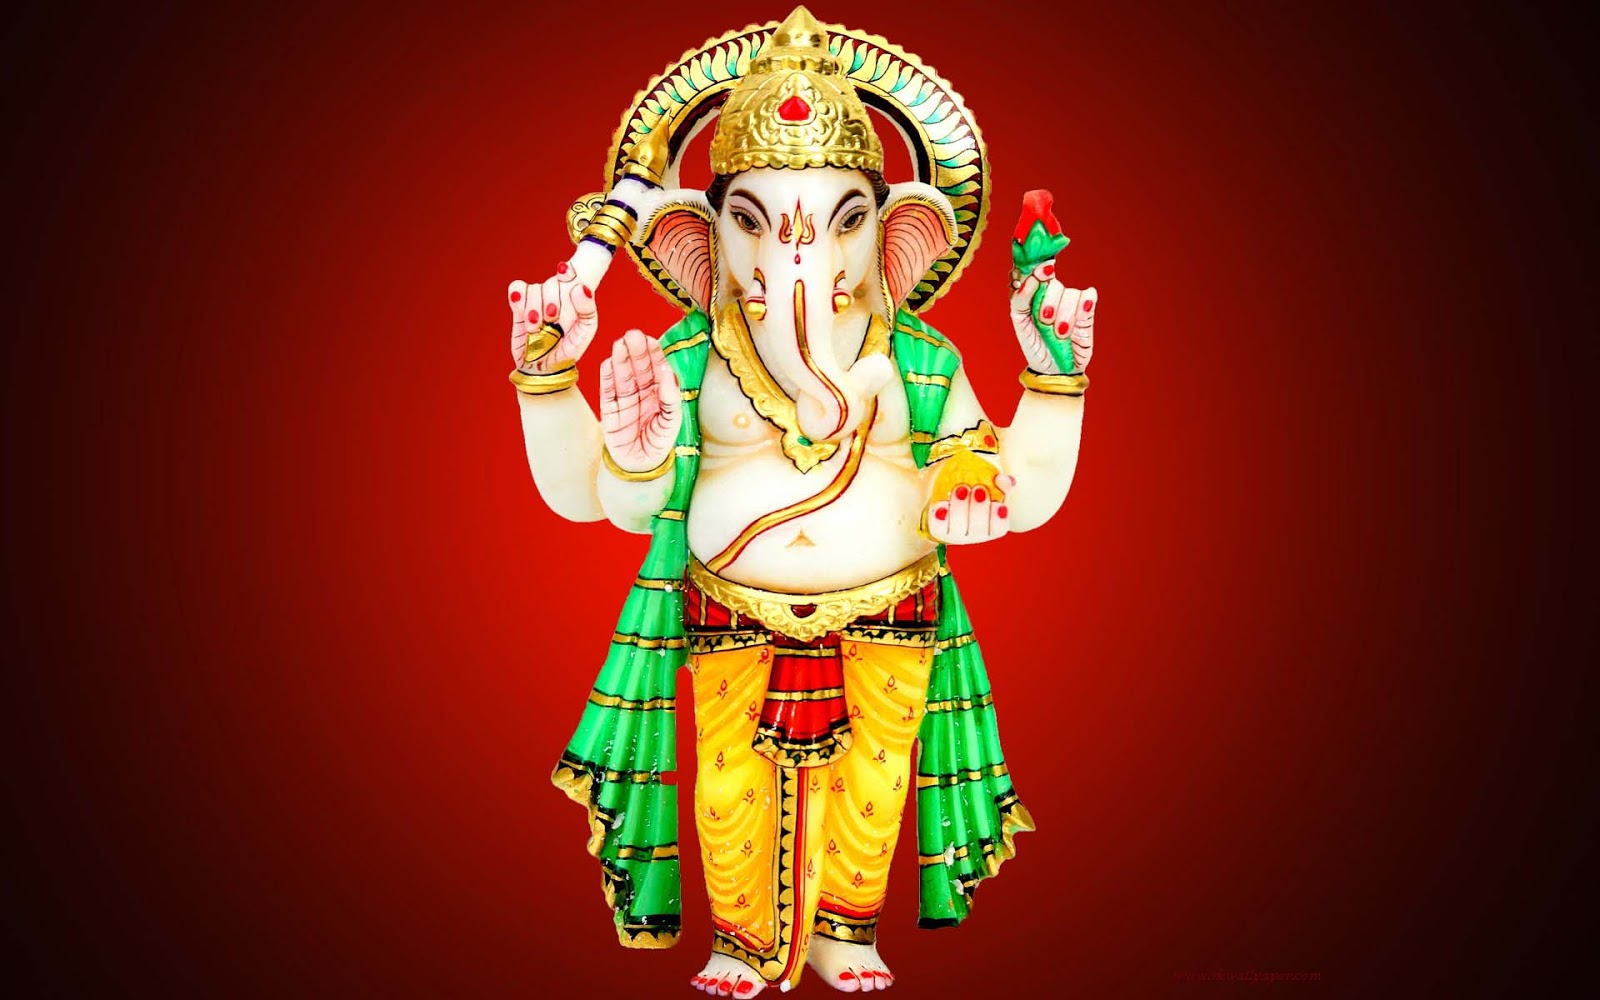 lord ganesha wallpaper computer background - photo #21